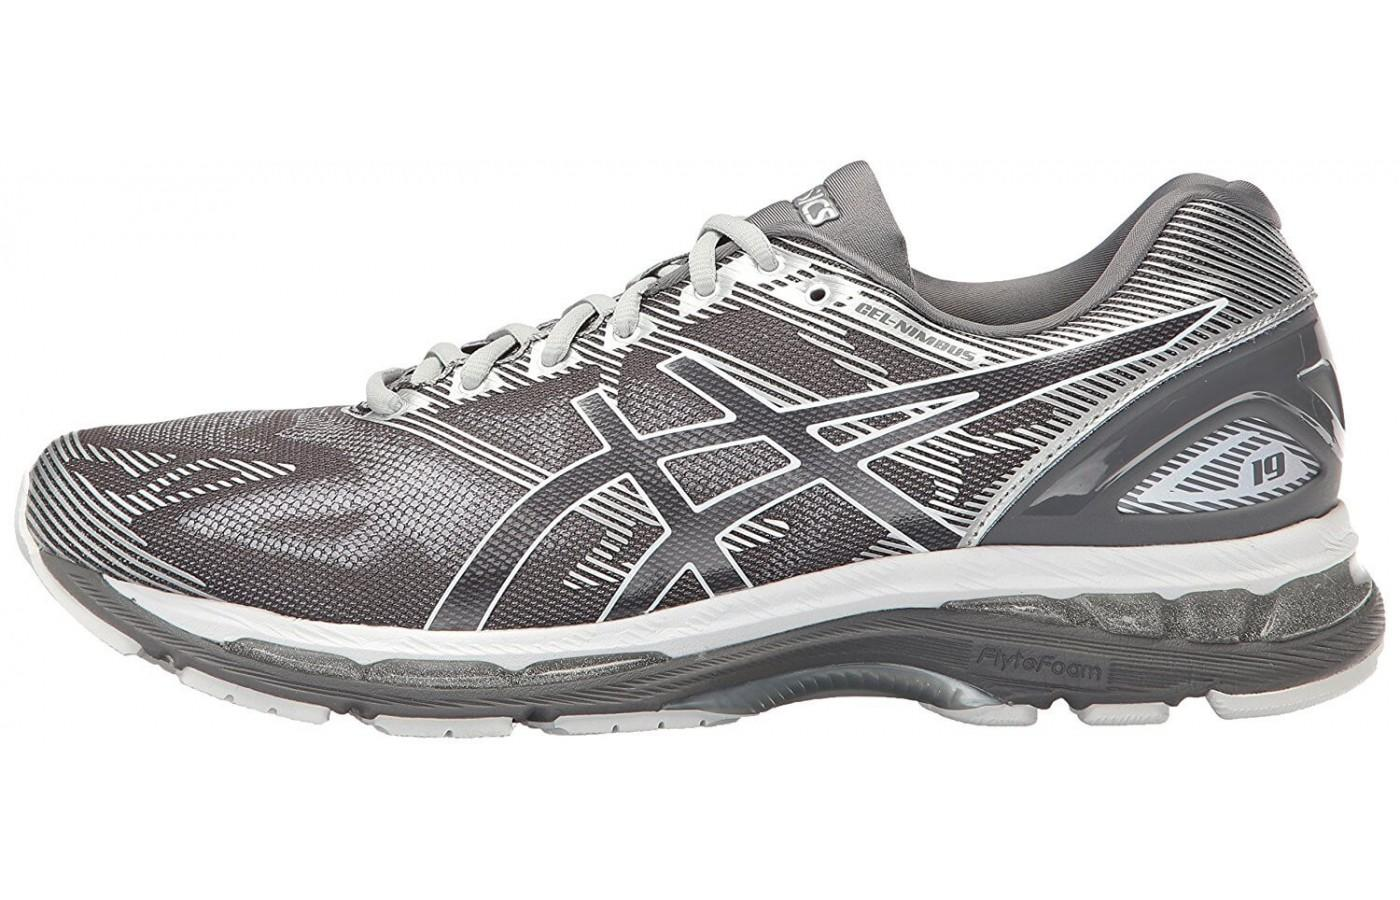 ASICS added an Exoskeletal Heel Counter to the Gel Nimbus 19 for a better fit through the heel.